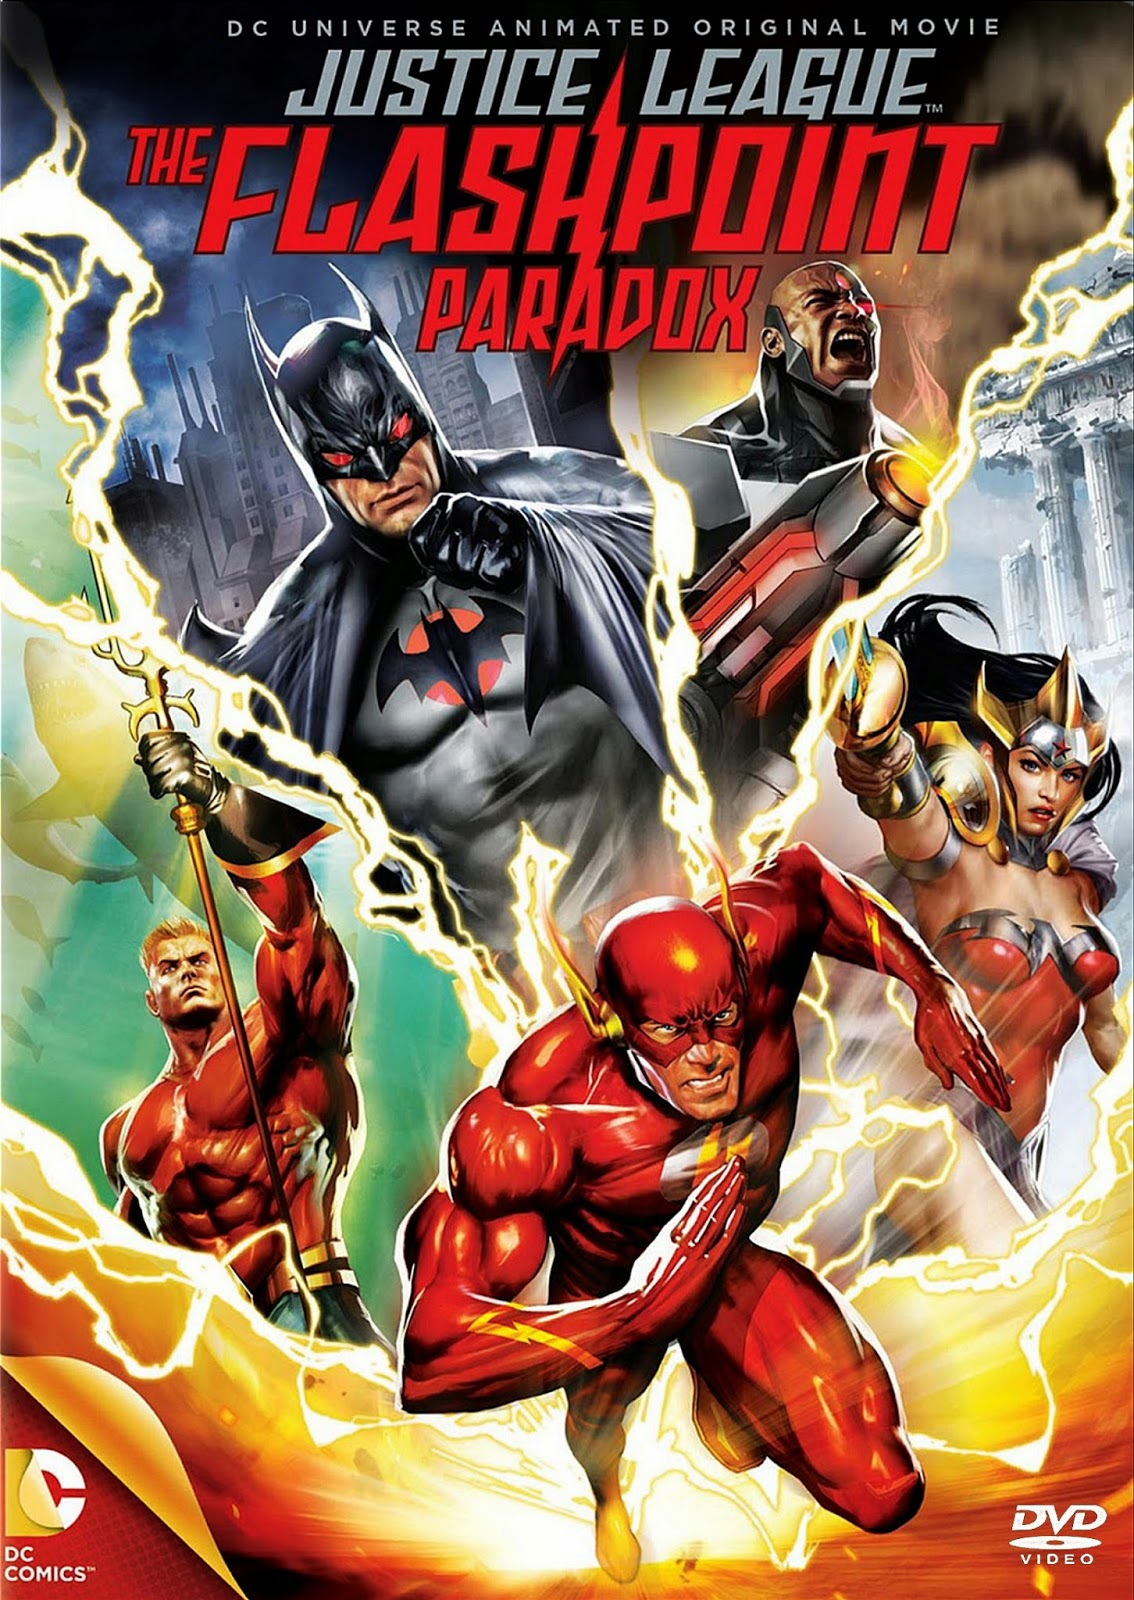 Justice League: The Flashpoint Paradox 2013 - Full (HD)